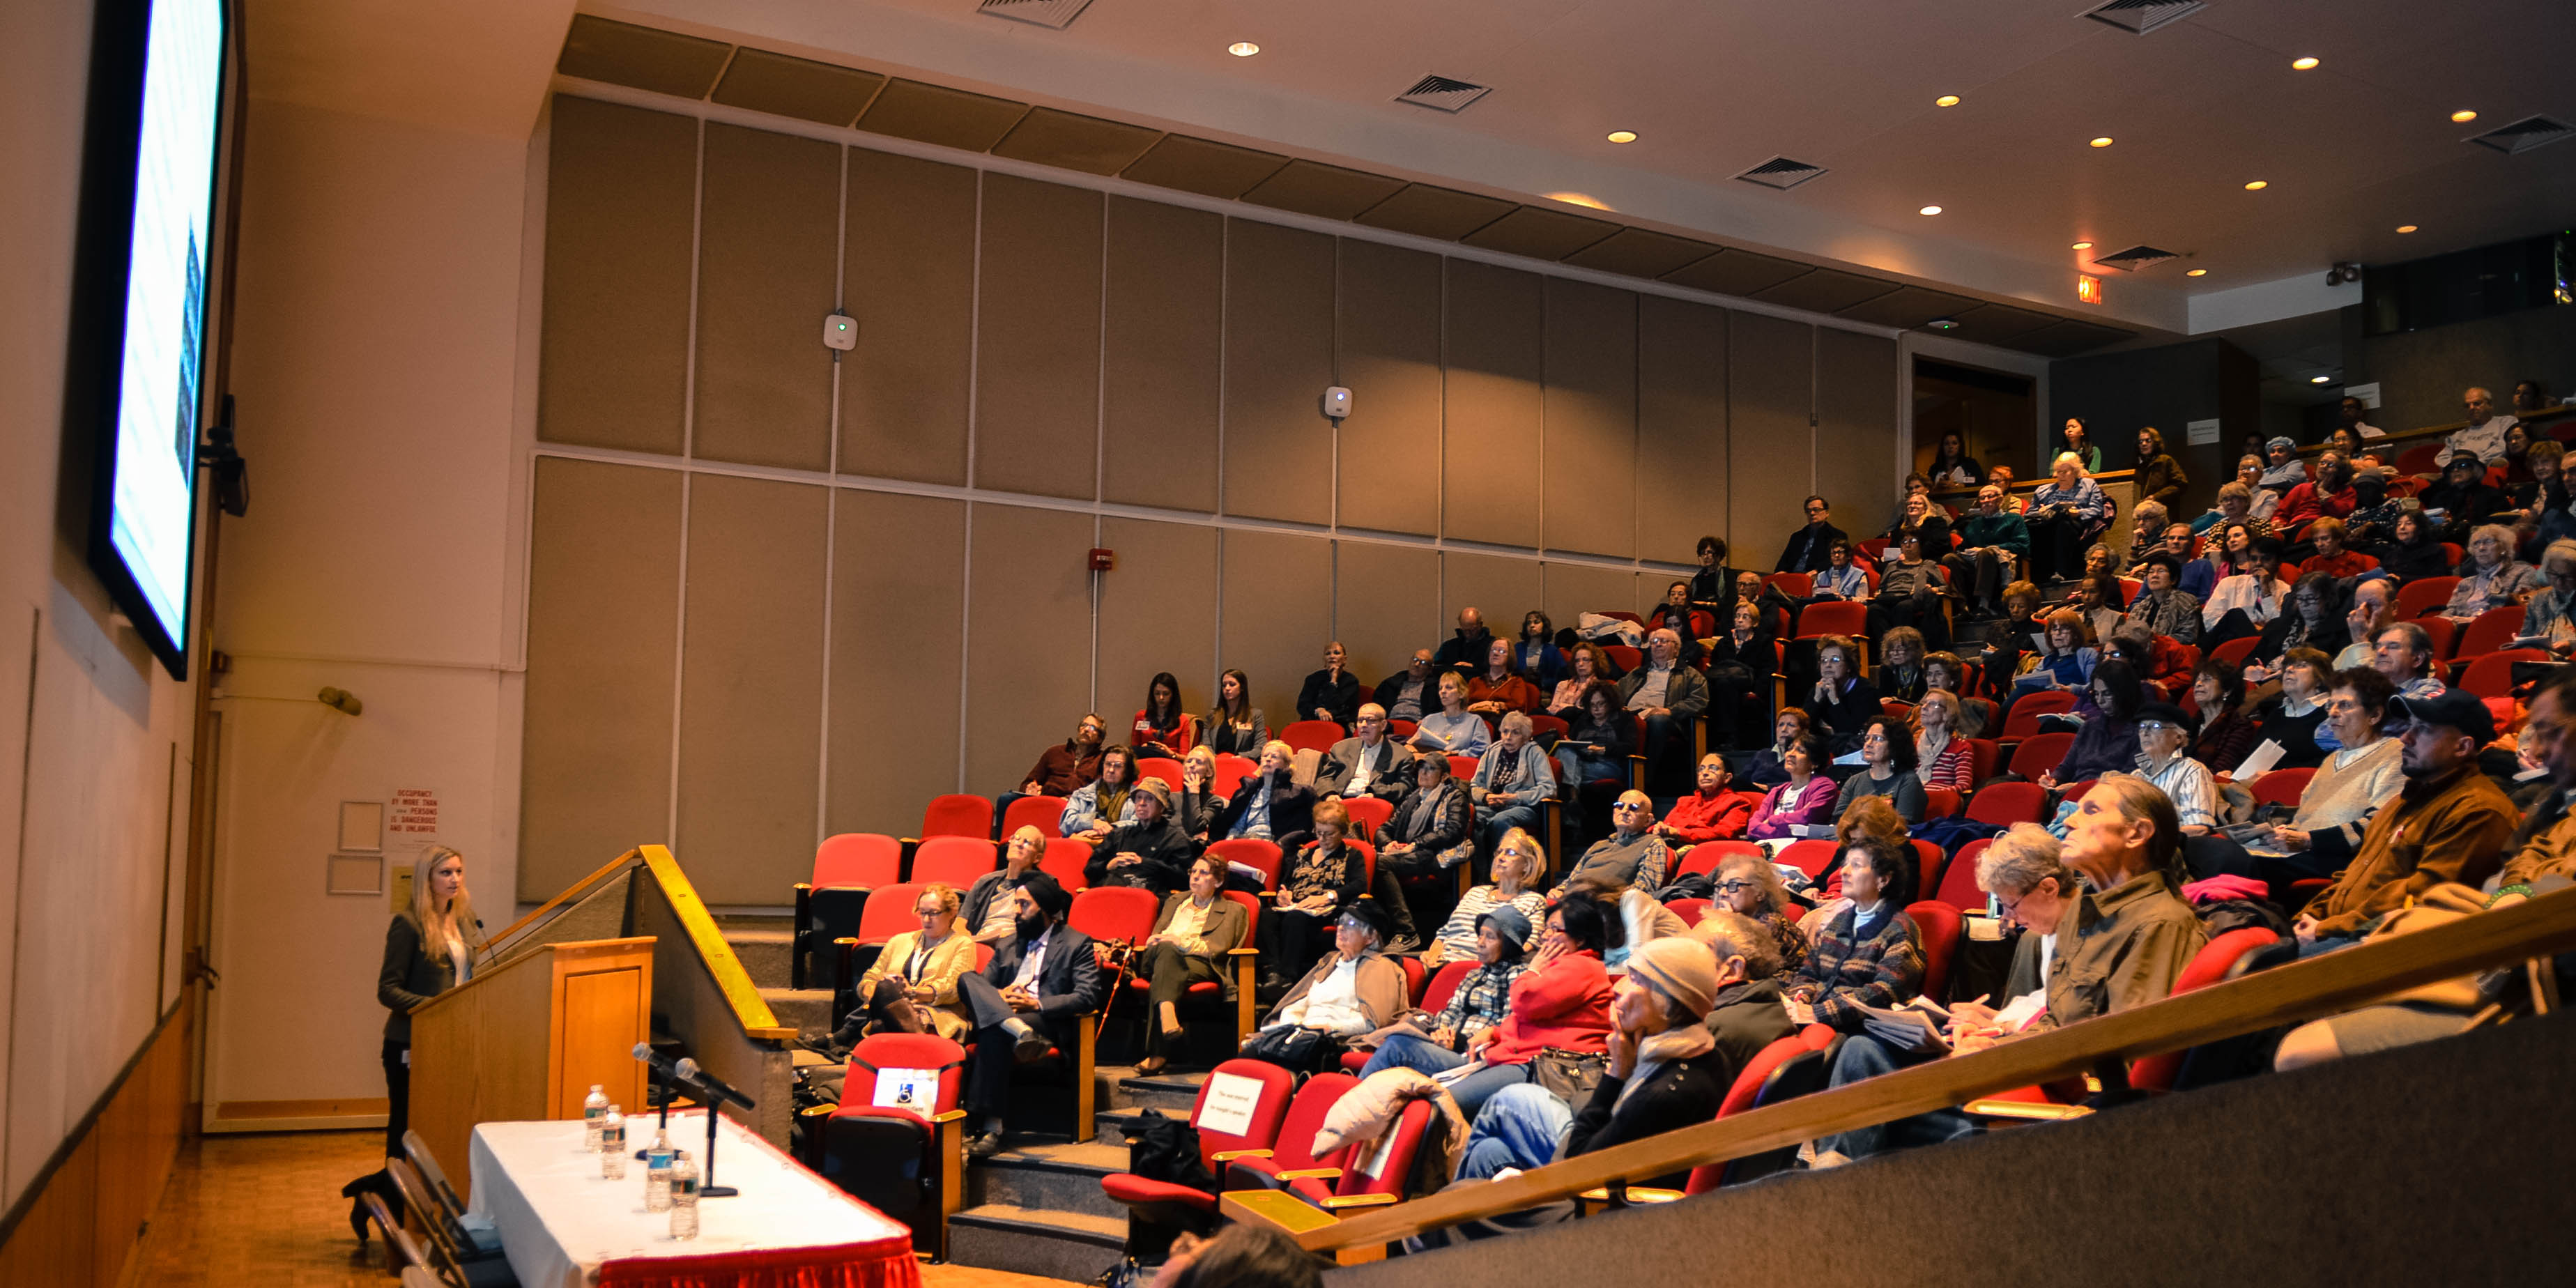 Dr. Lisa Witkin addresses a previous Health and Wellness Seminar at Weill Cornell's Uris Auditorium